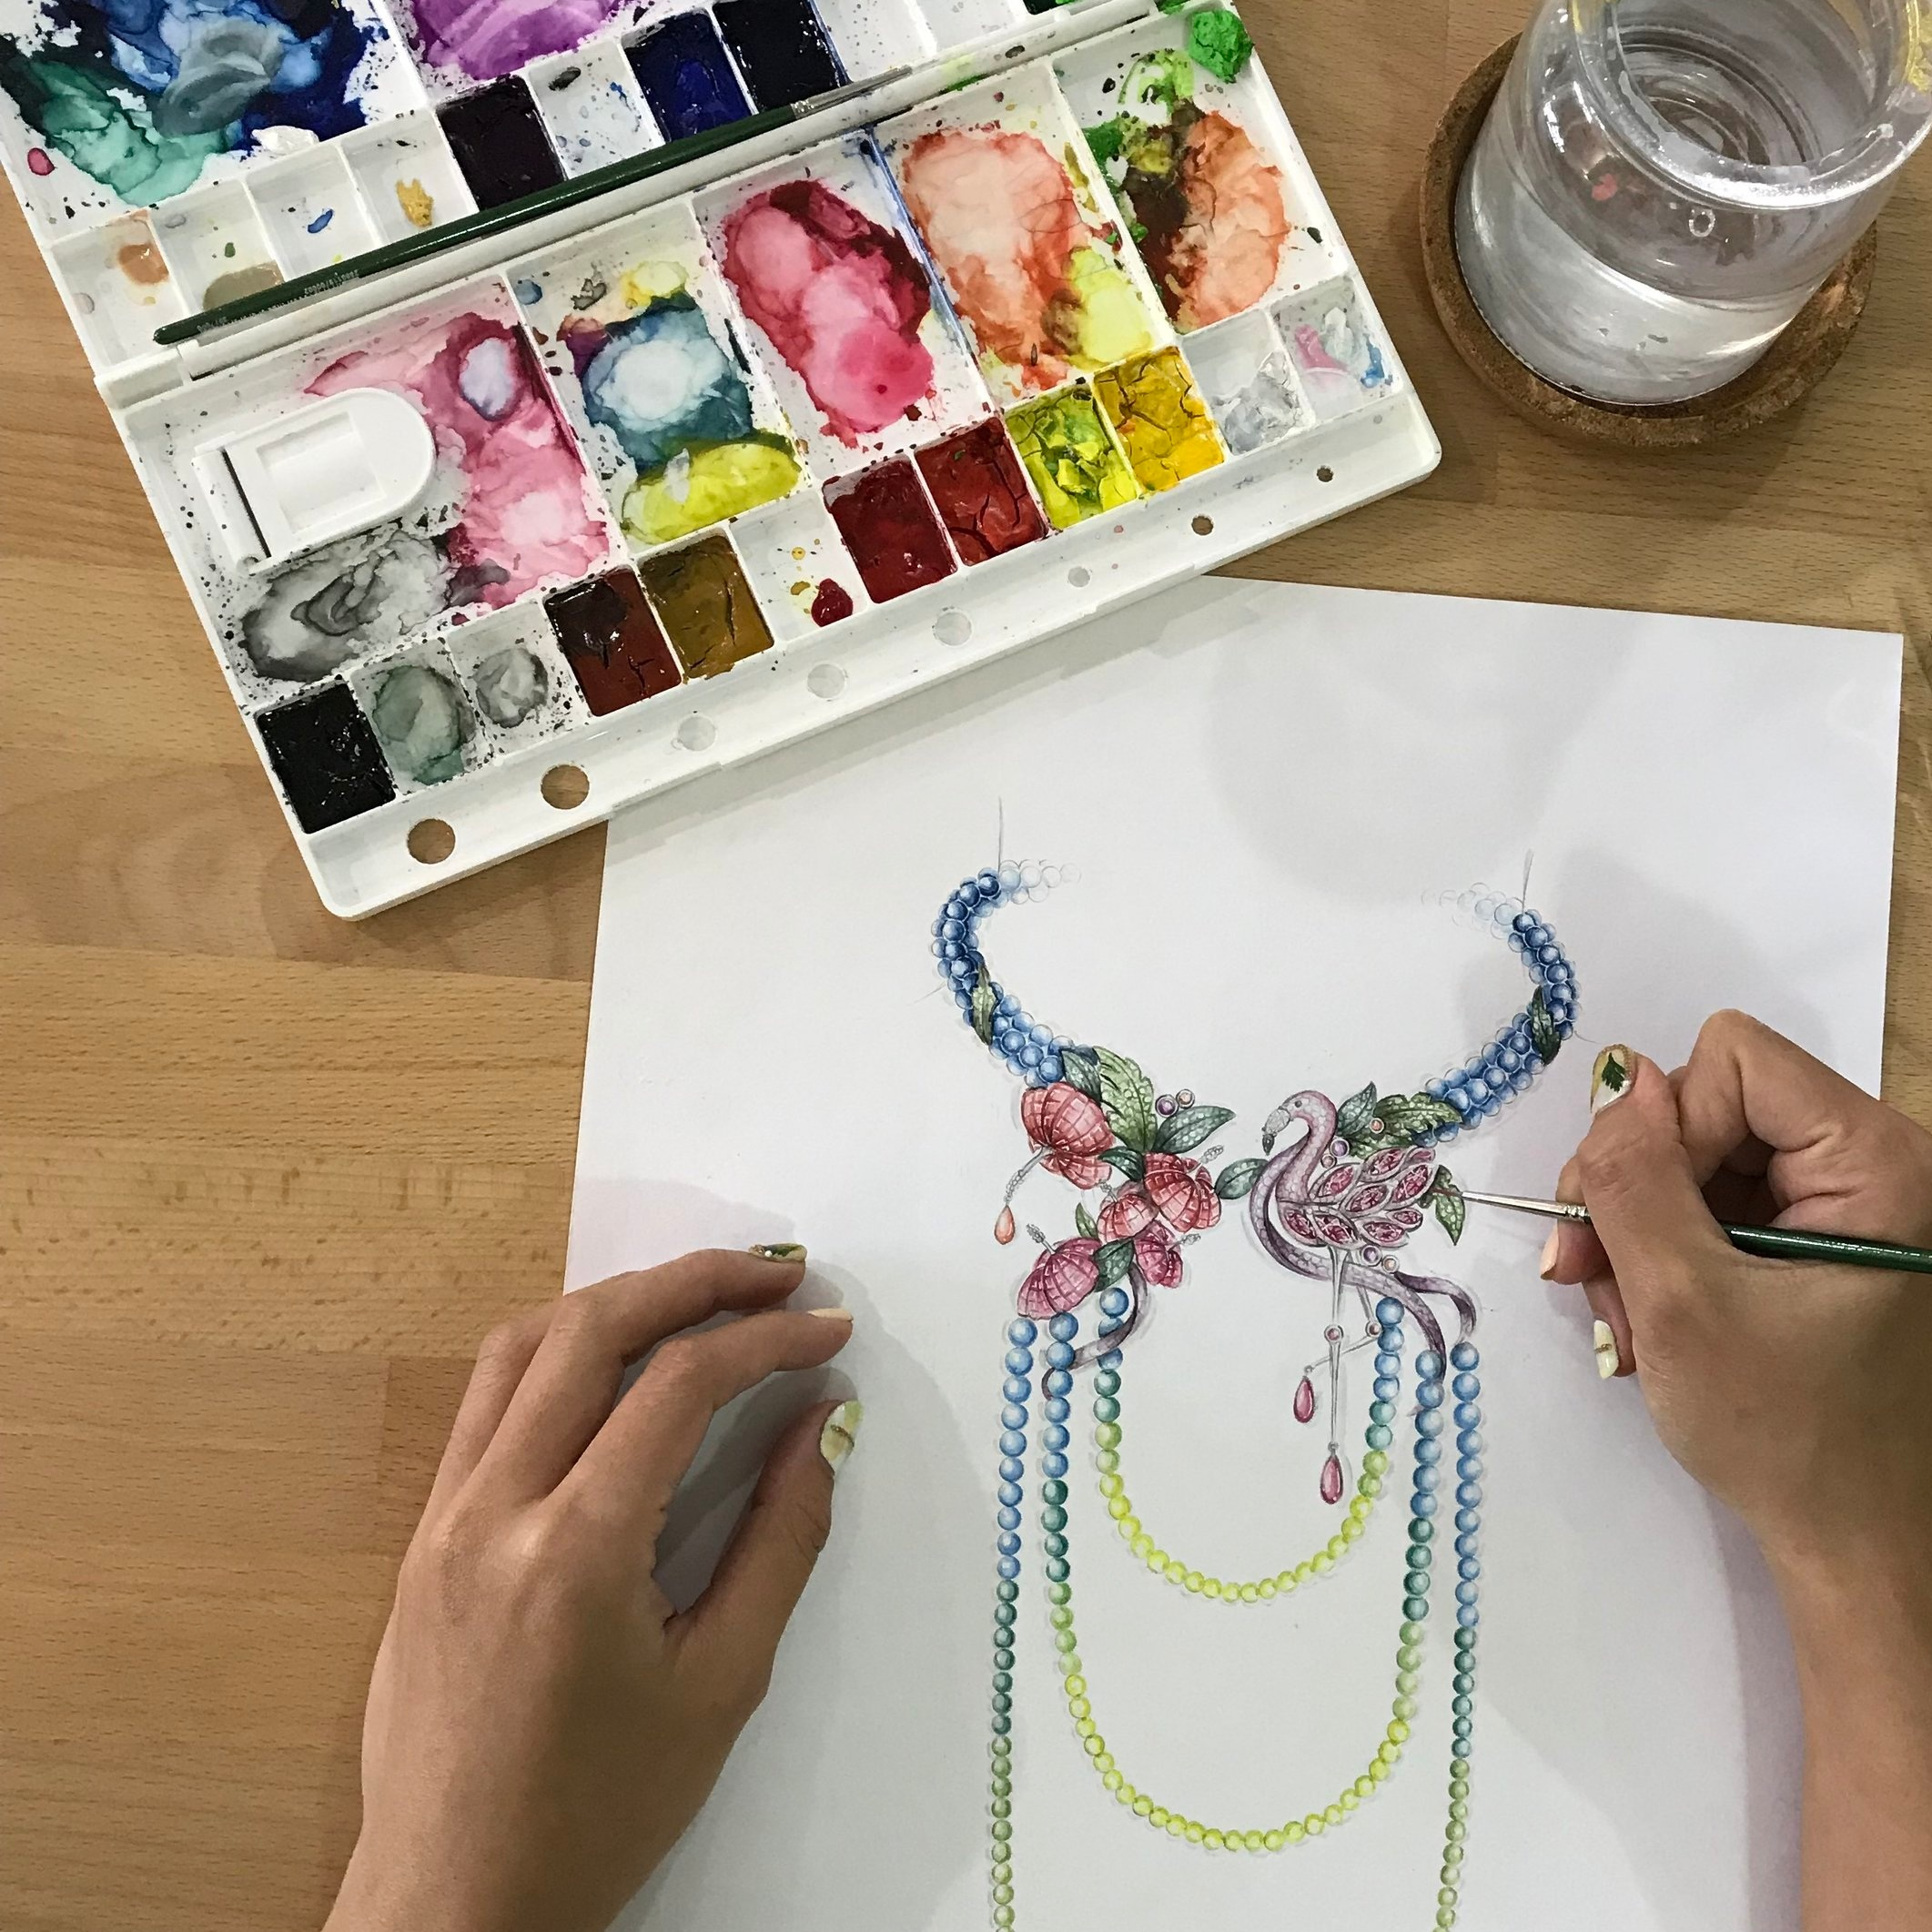 Jewellery Design Level 2 - This 6- day class covers drawing in perspective and rendering with watercolour to create life-like jewellery designs